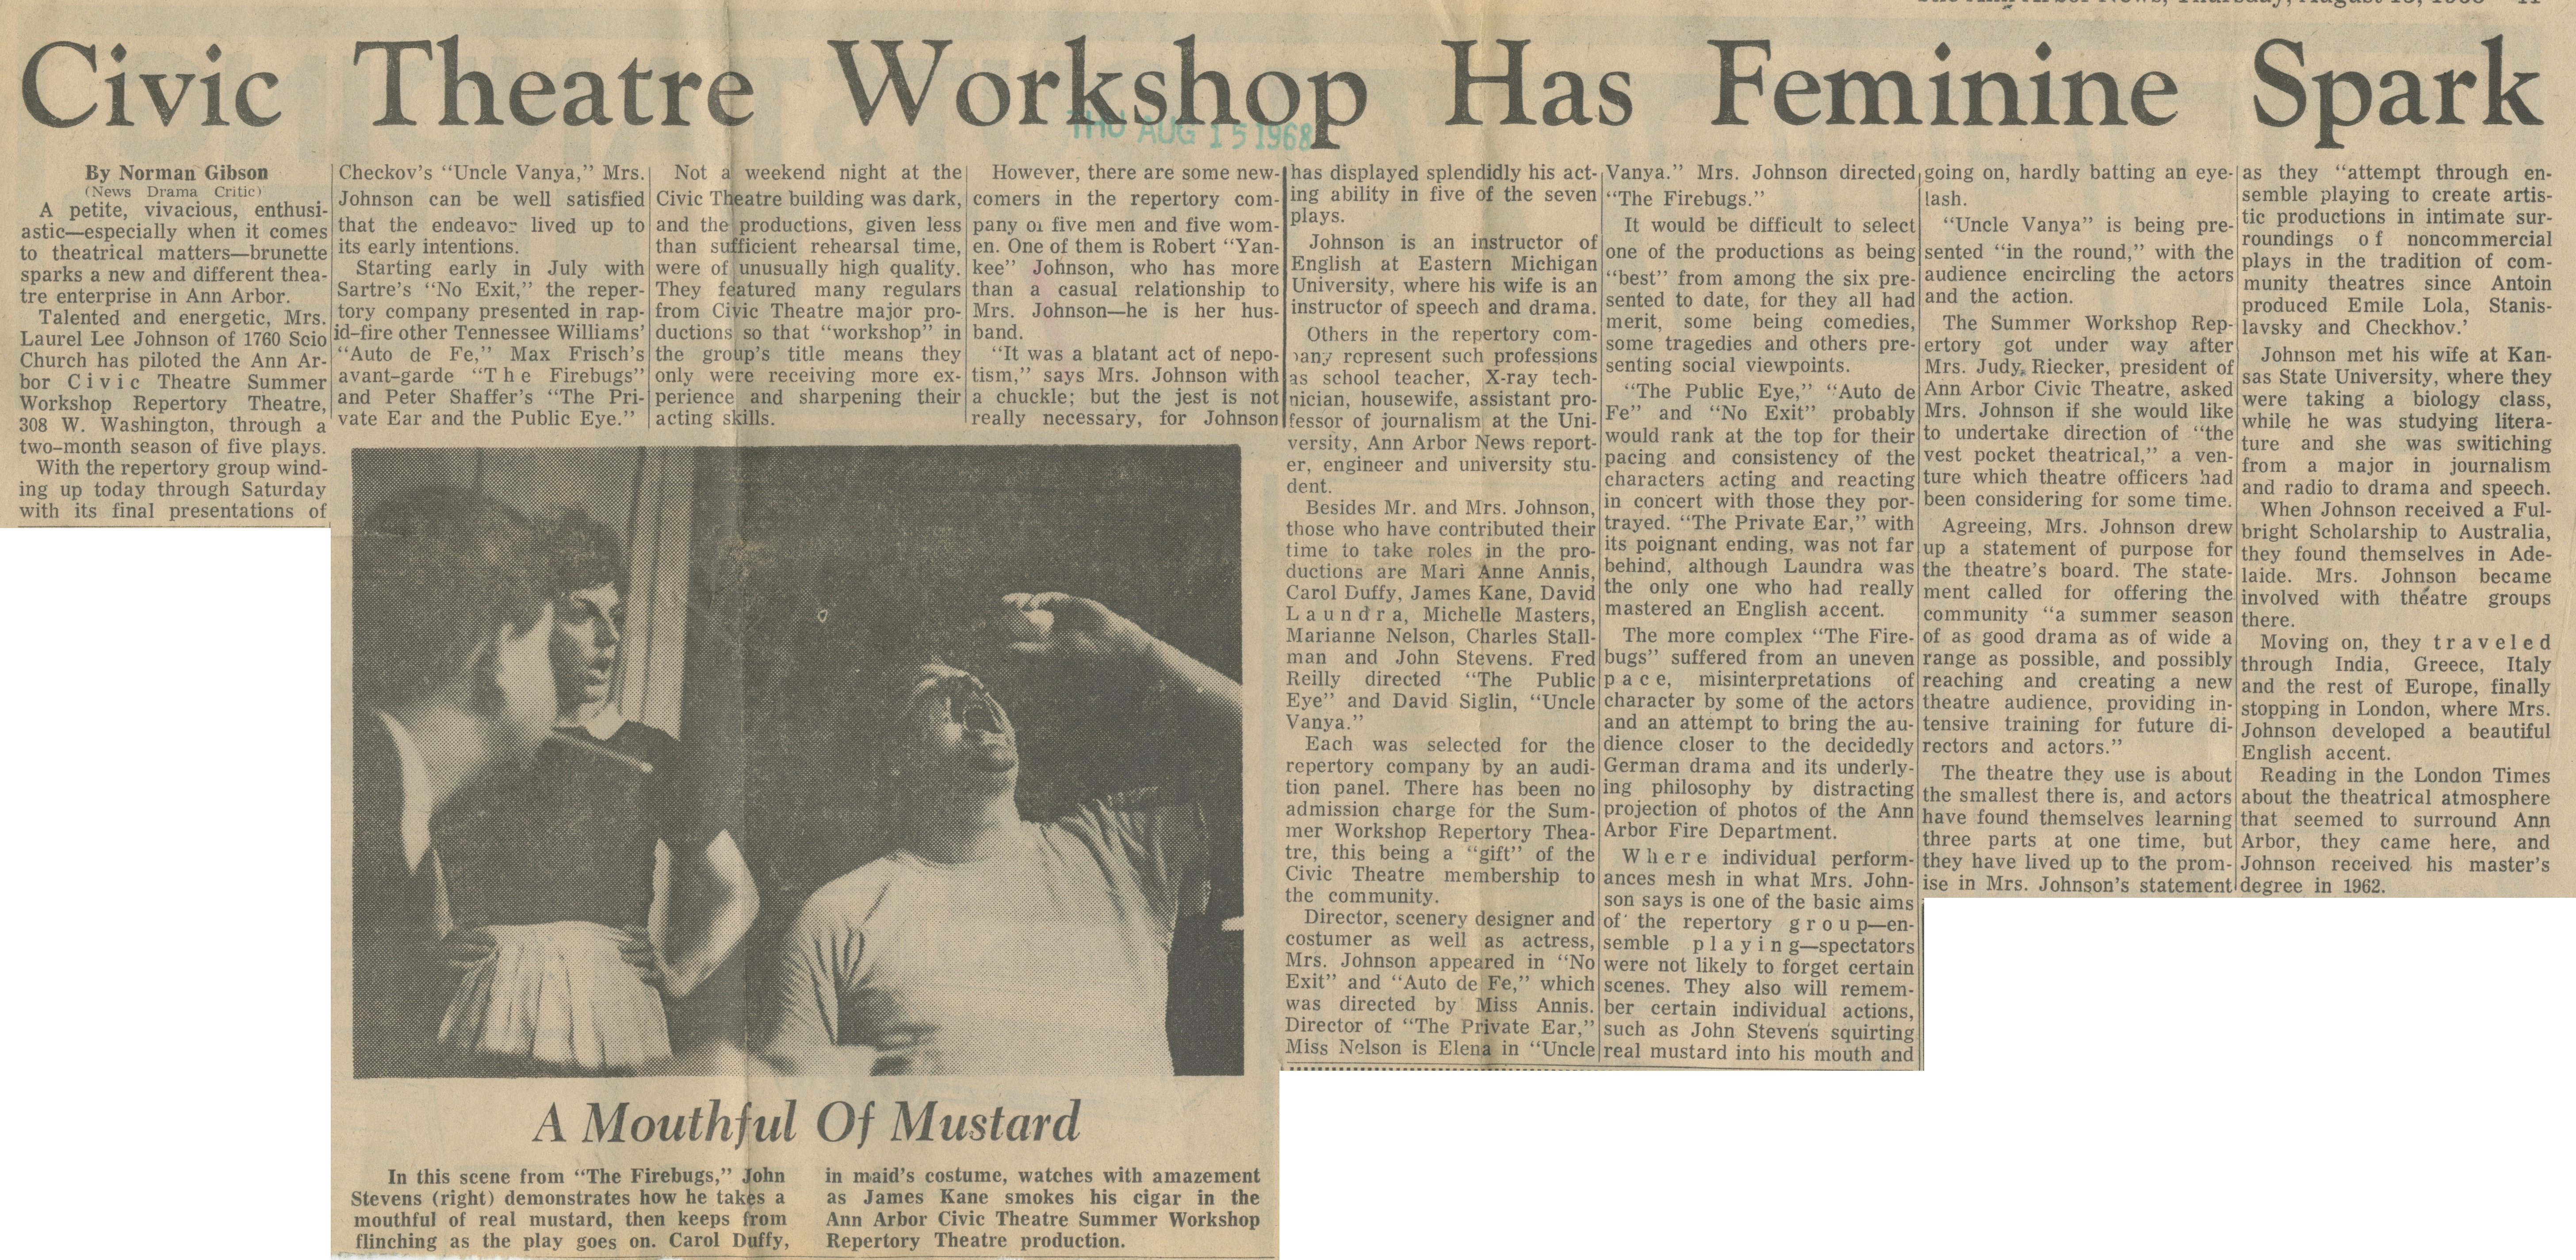 Civic Theatre Workshop Has Feminine Spark image